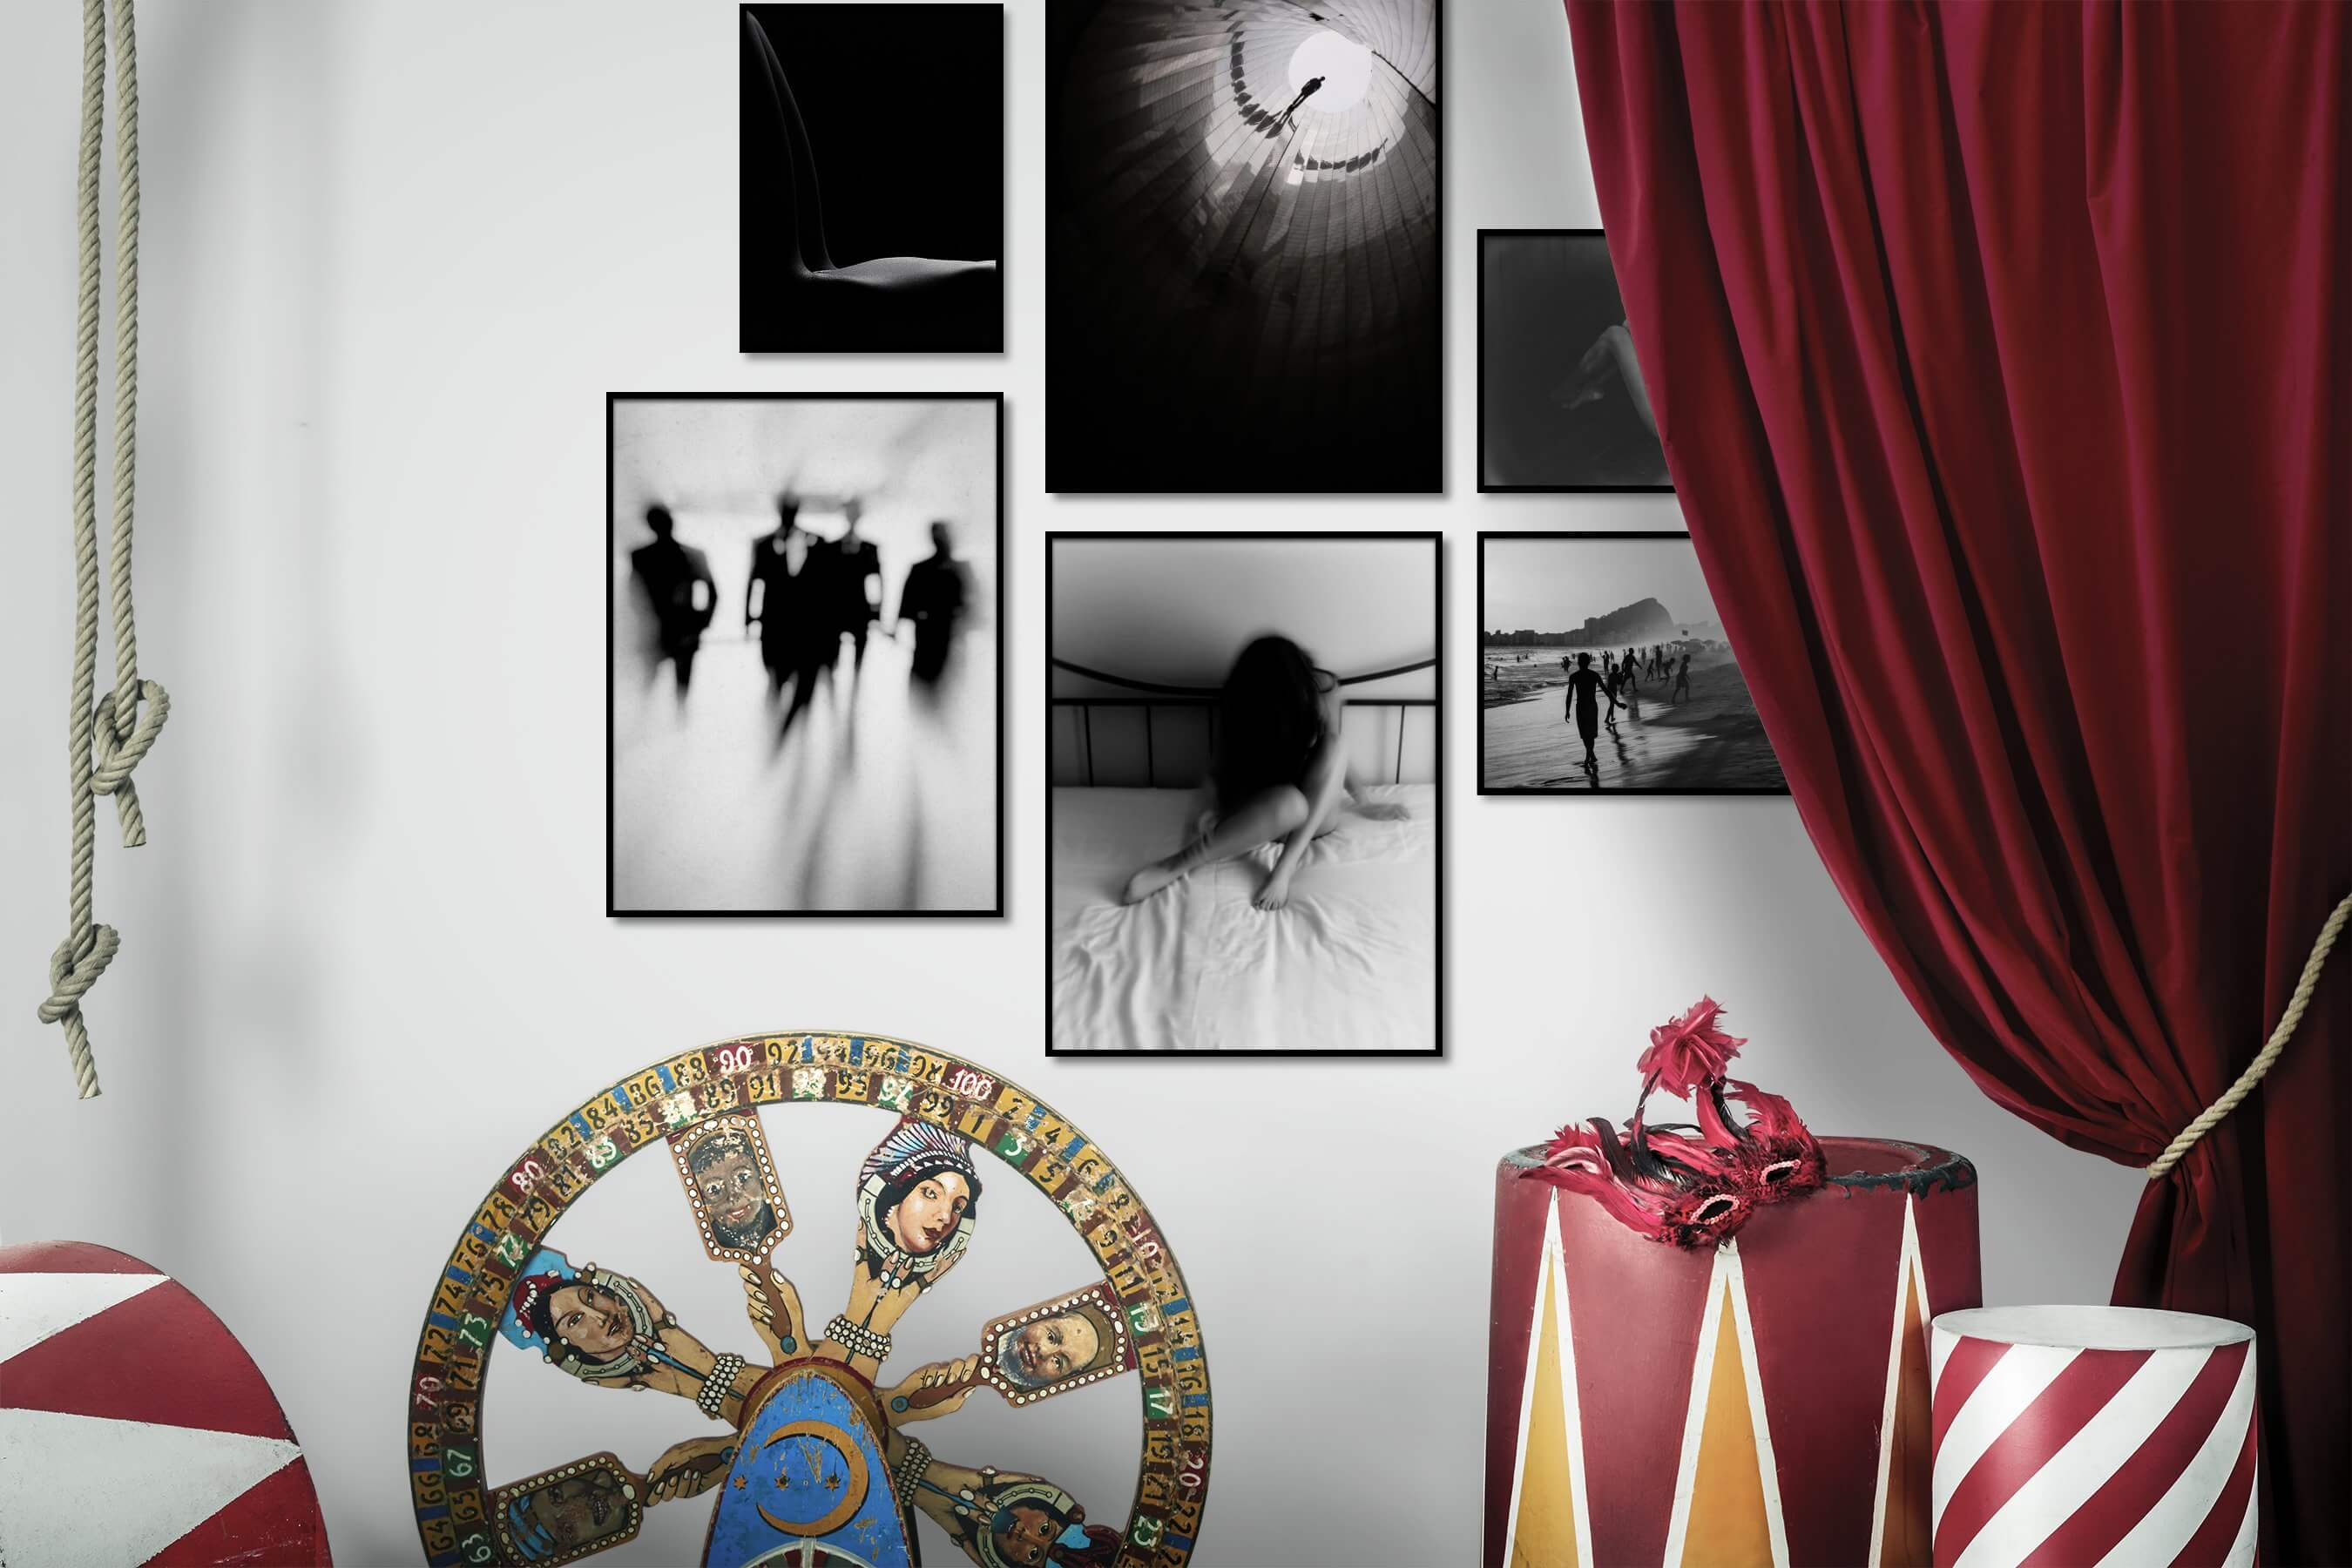 Gallery wall idea with six framed pictures arranged on a wall depicting Fashion & Beauty, Black & White, For the Minimalist, Artsy, and Beach & Water